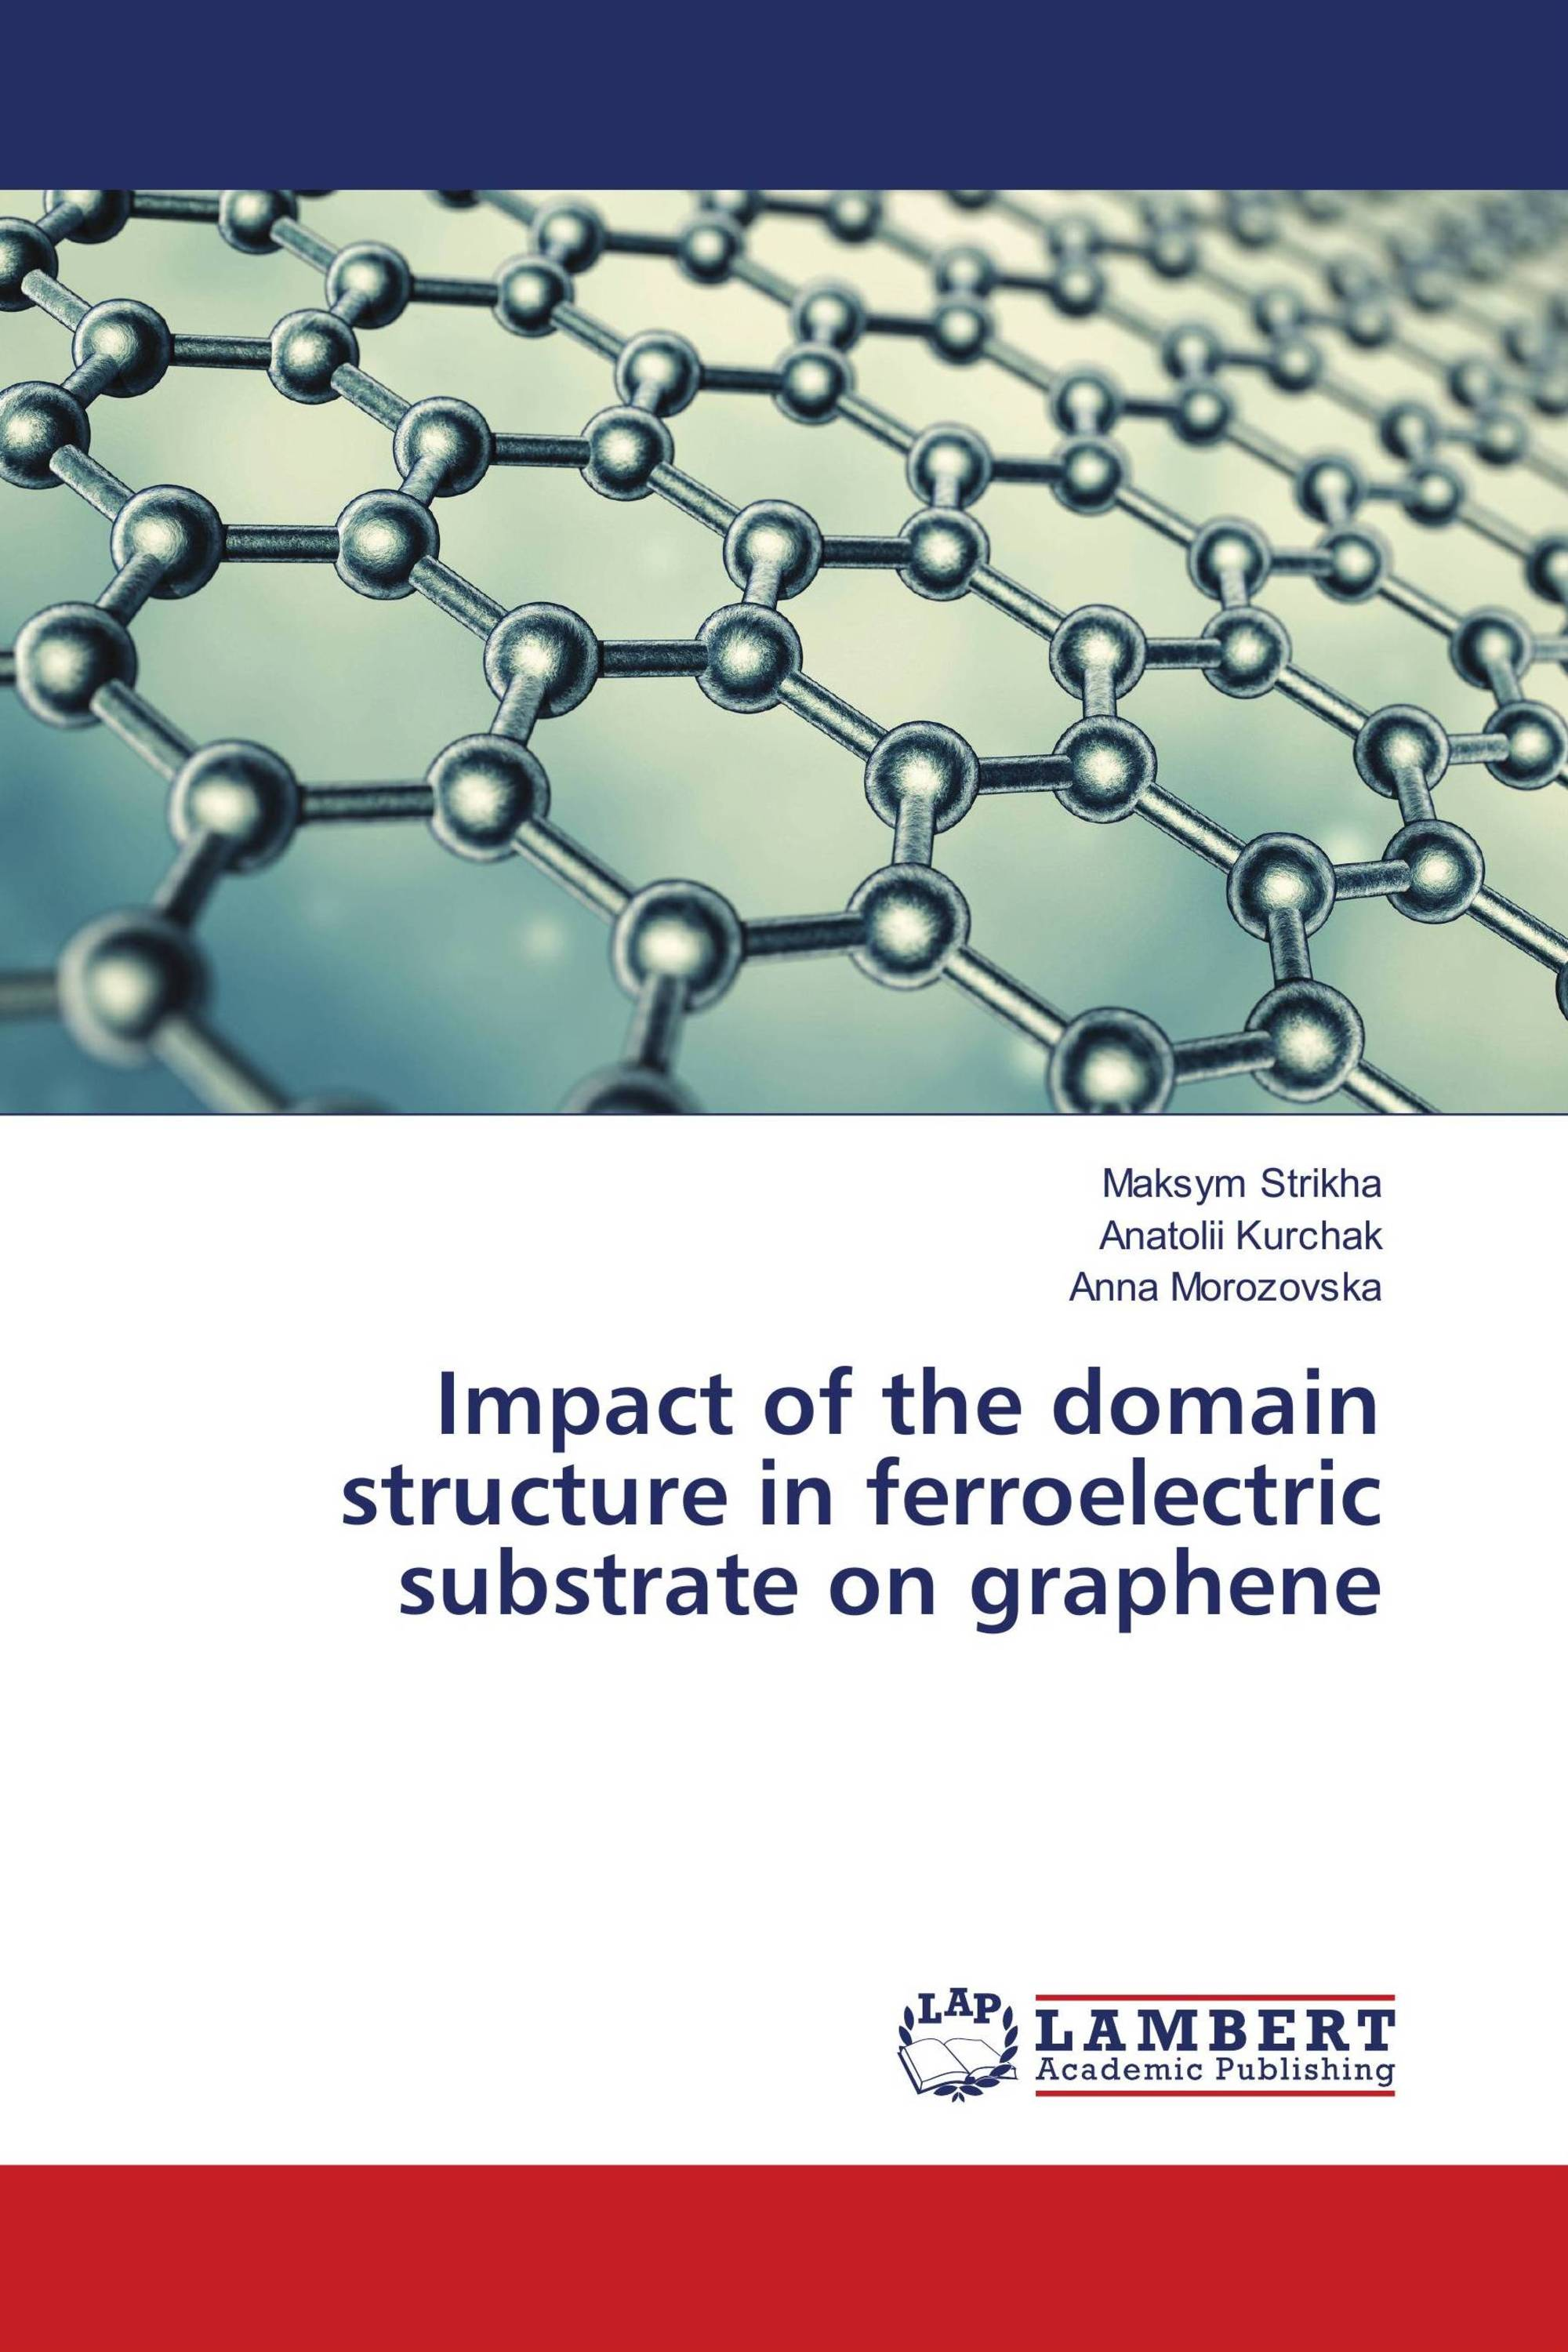 Impact of the domain structure in ferroelectric substrate on graphene